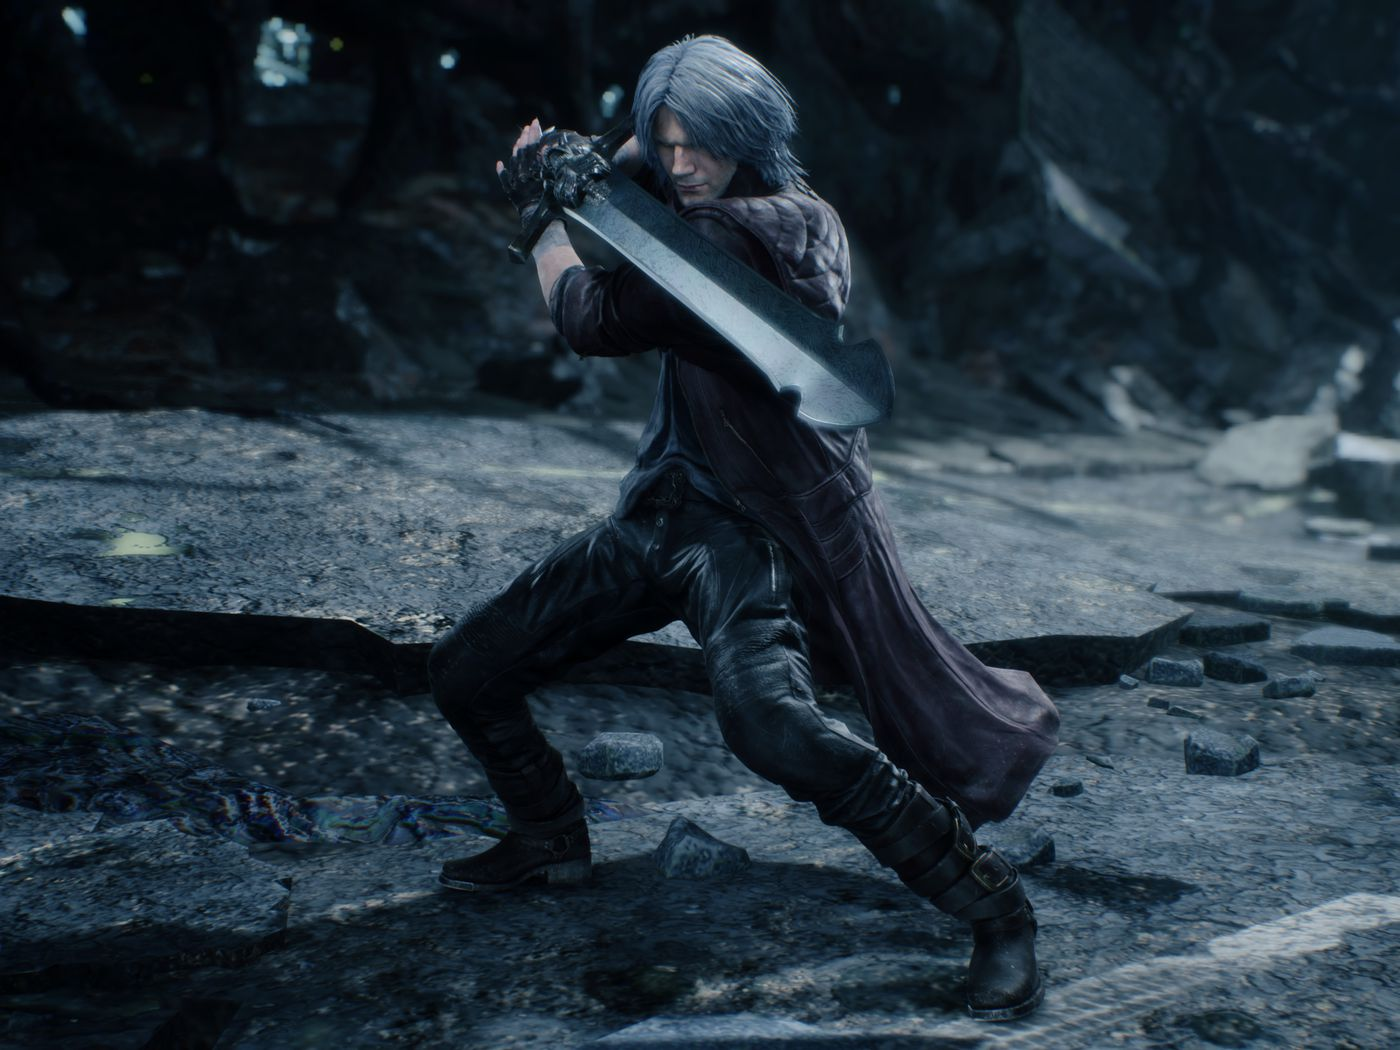 Devil May Cry 5 theme gets new vocal tracks after allegations